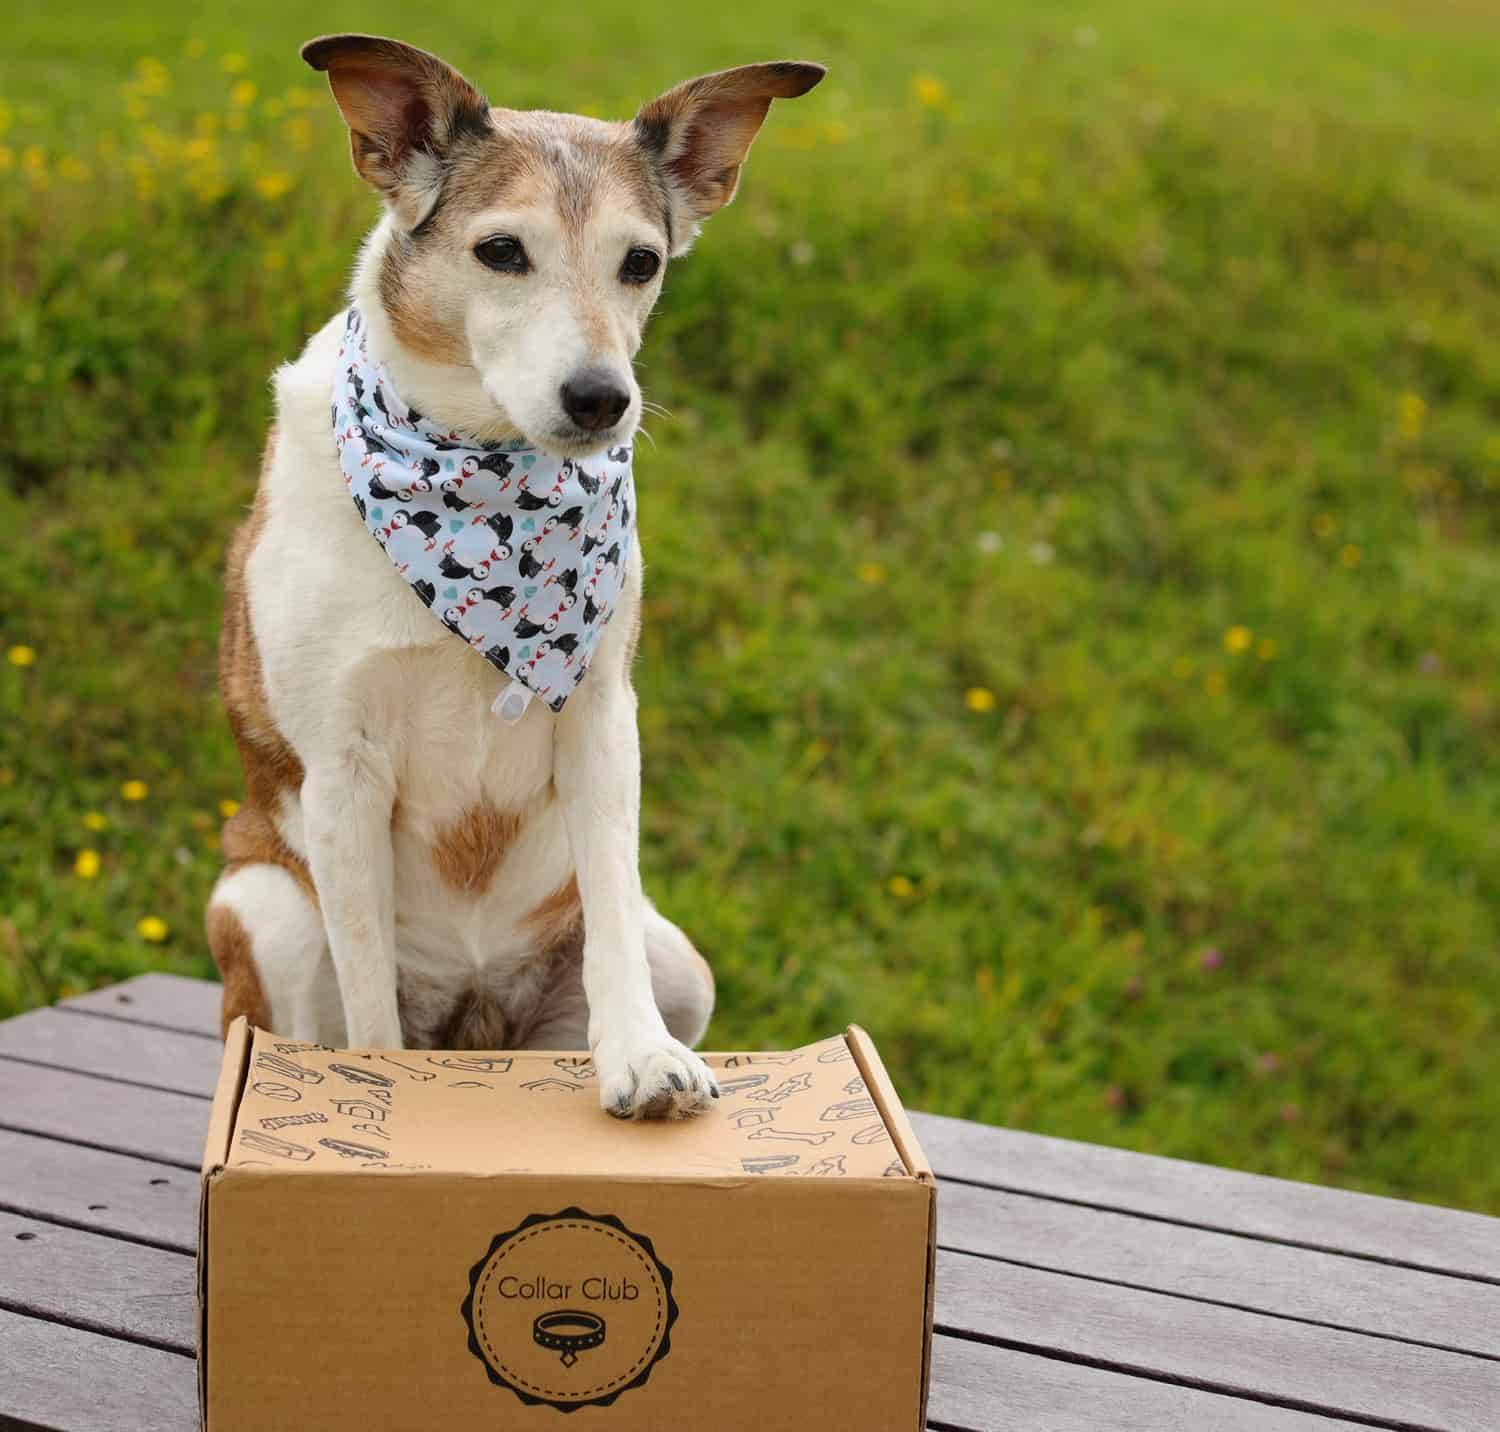 Collar Club Doggy Subscription Box